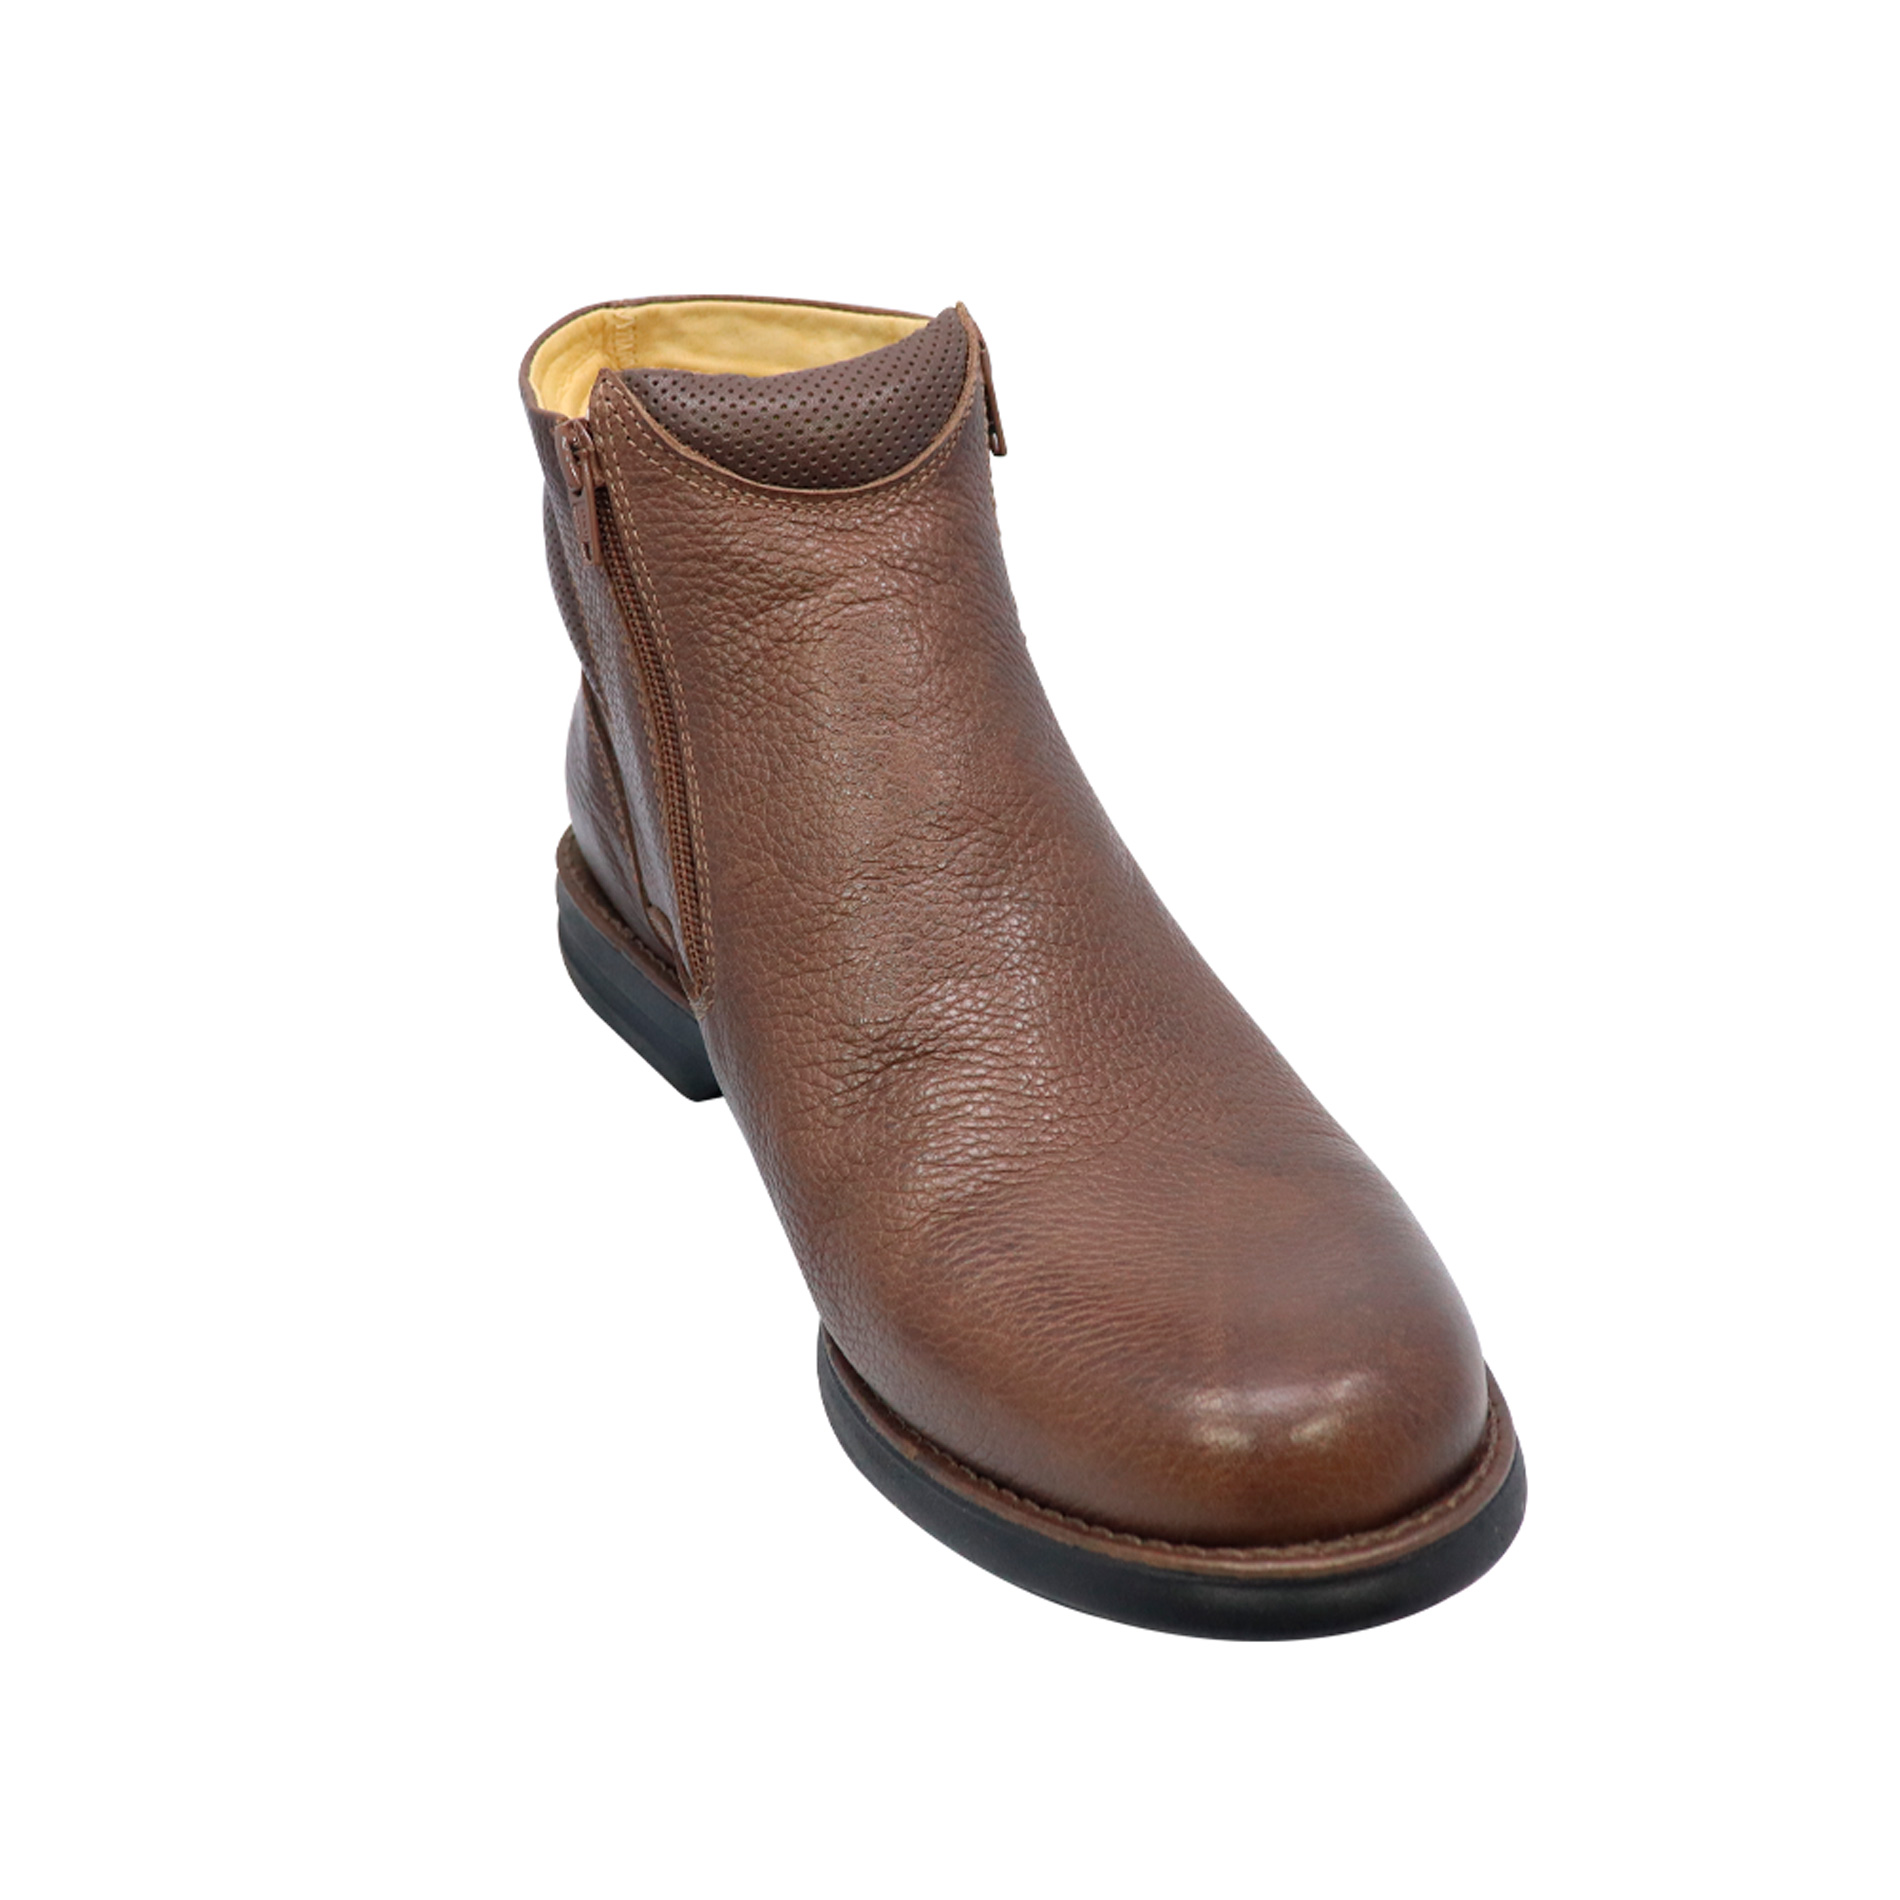 BOTINA MASCULINA WEST COUNTRY BRW/CAF 87004